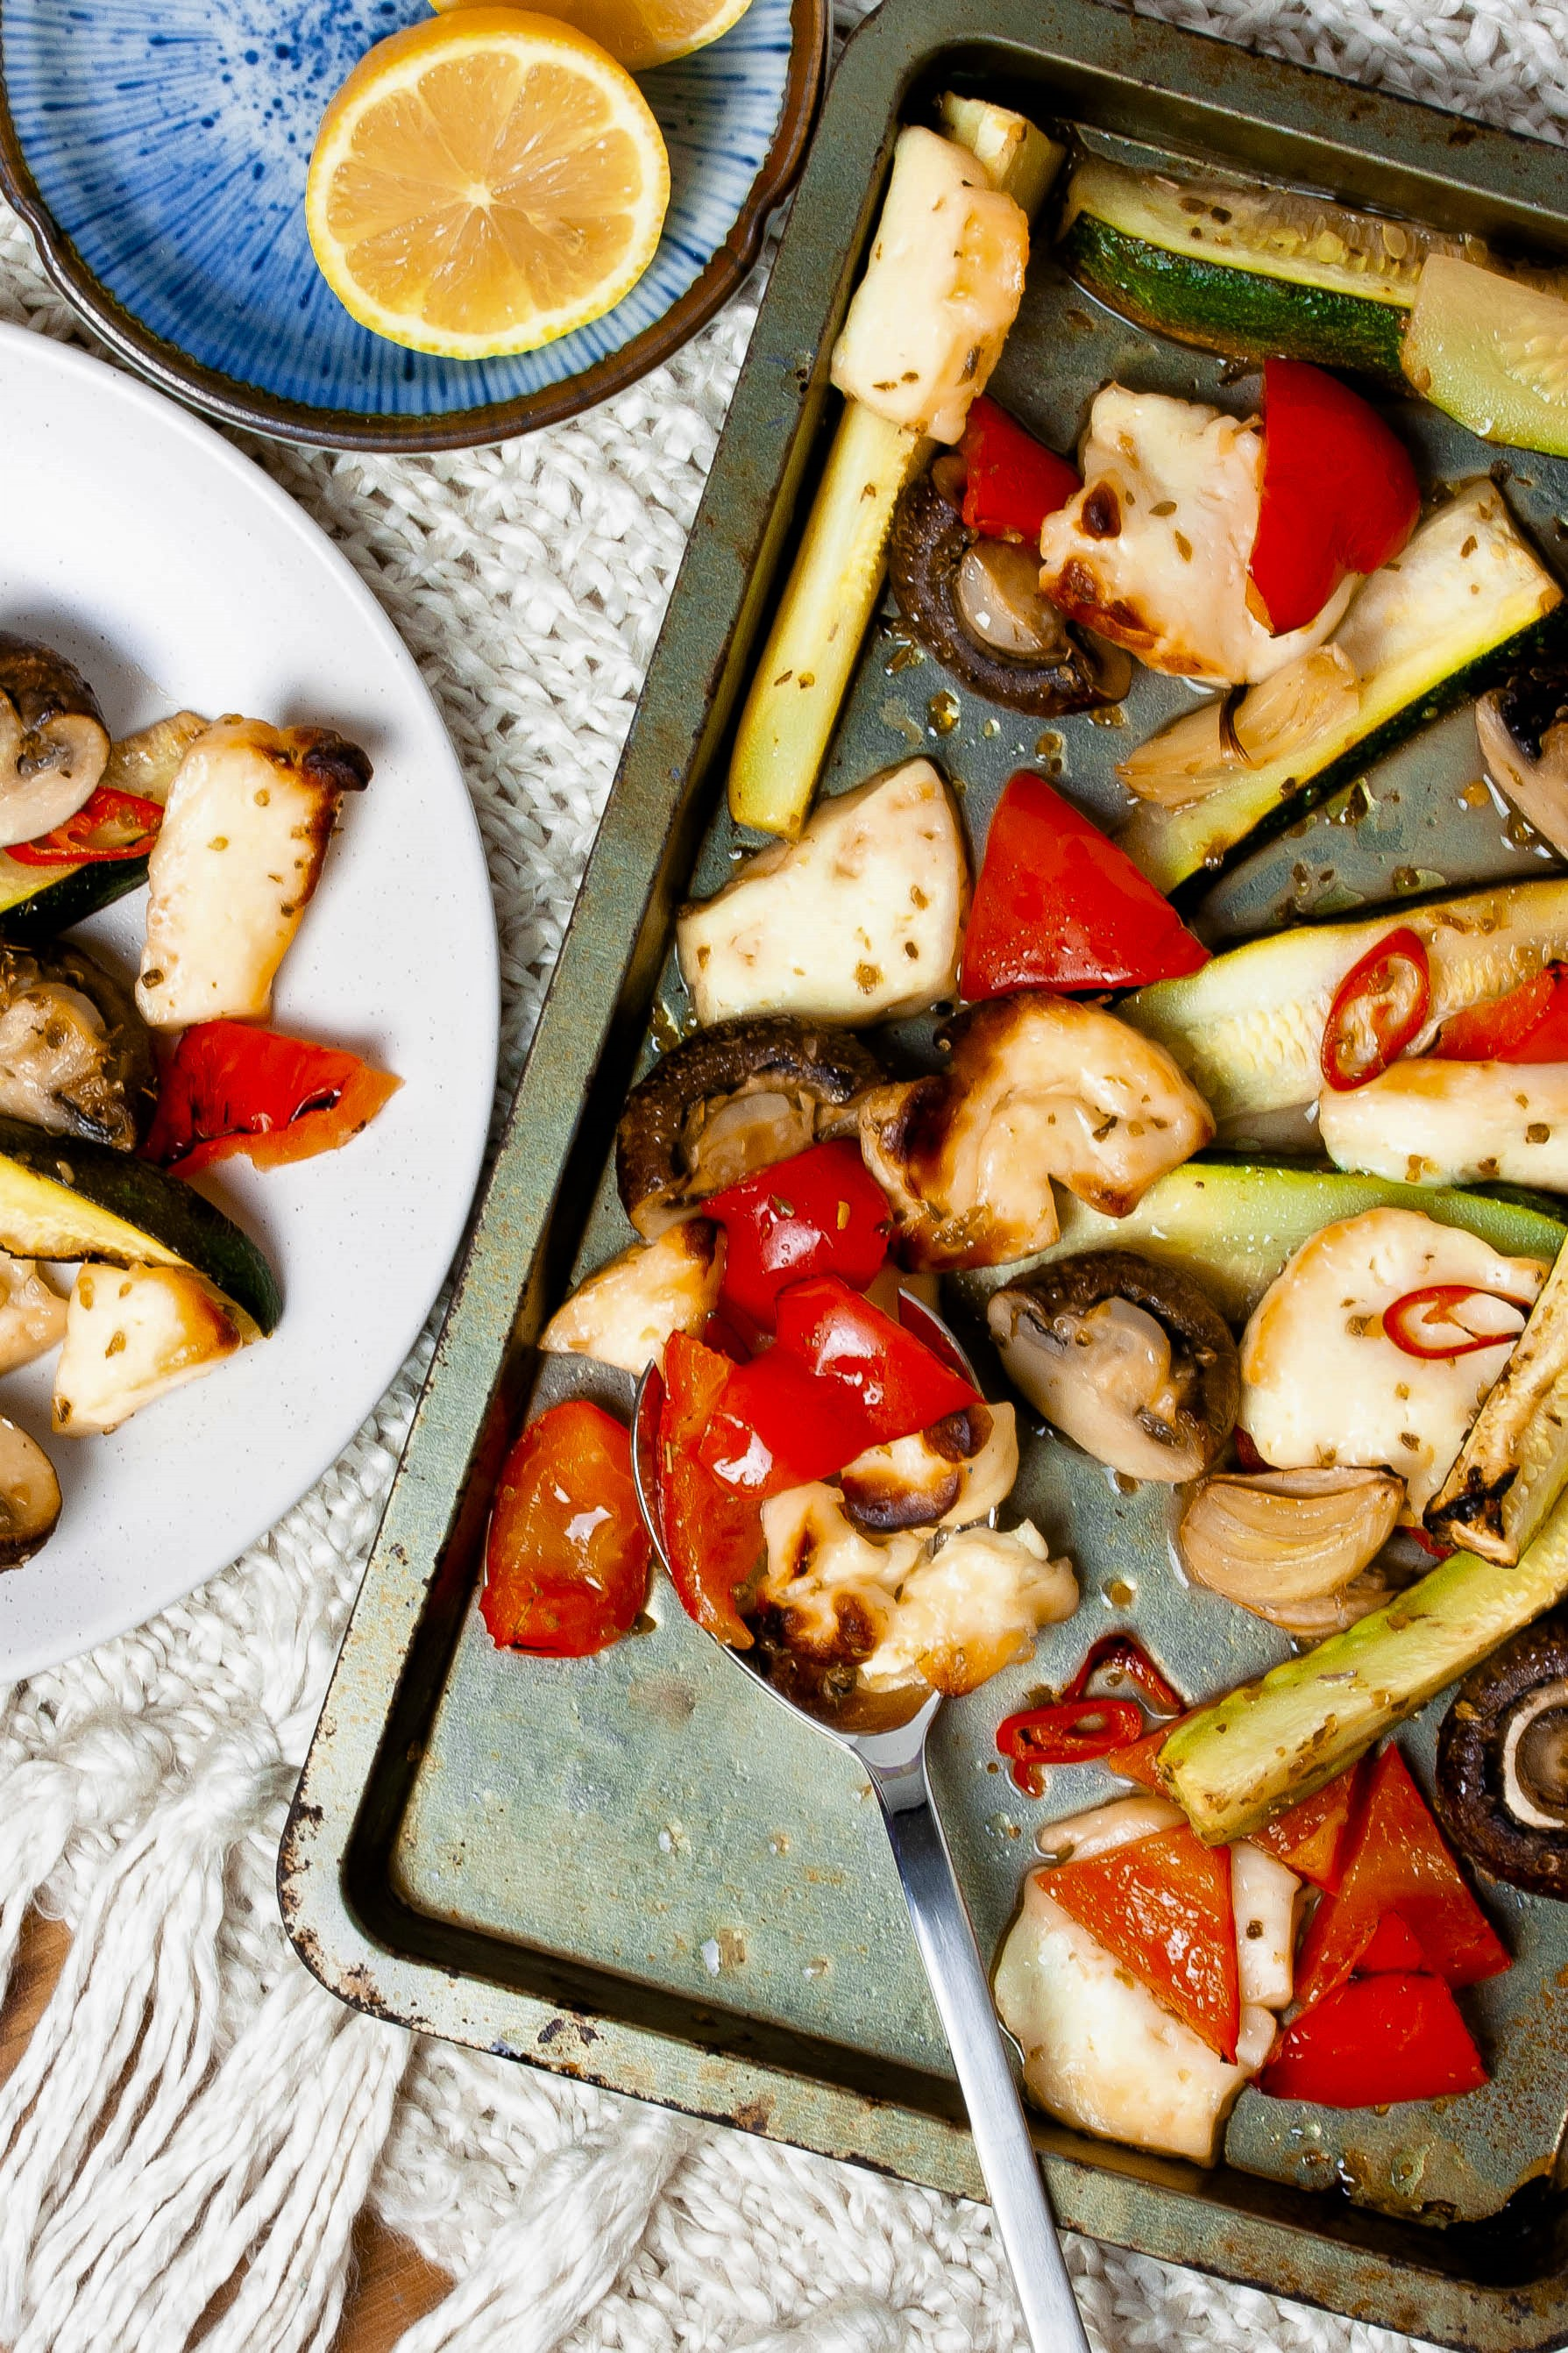 Steam oven baked haloumi cheese, red peppers, zucchini and chilli, served from a metal pan with a blue dish of lemon halves at the side.